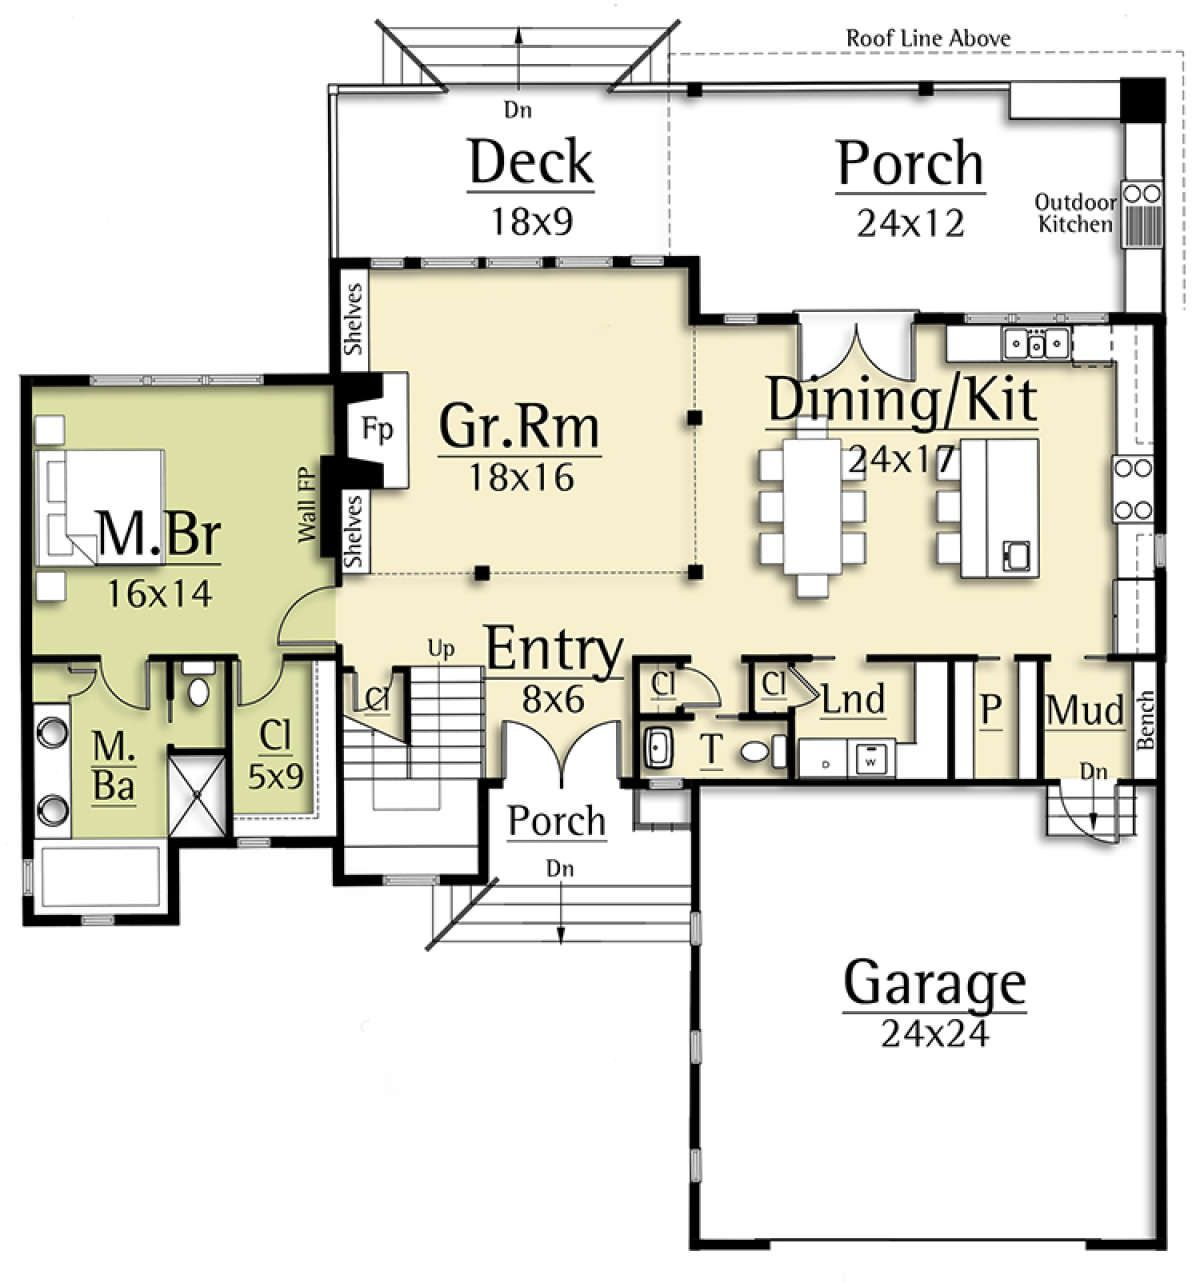 House Plan 8504 00109 Contemporary Plan 2 429 Square Feet 3 Bedrooms 3 5 Bathrooms In 2021 House Plans Modern House Plan House Plan With Loft